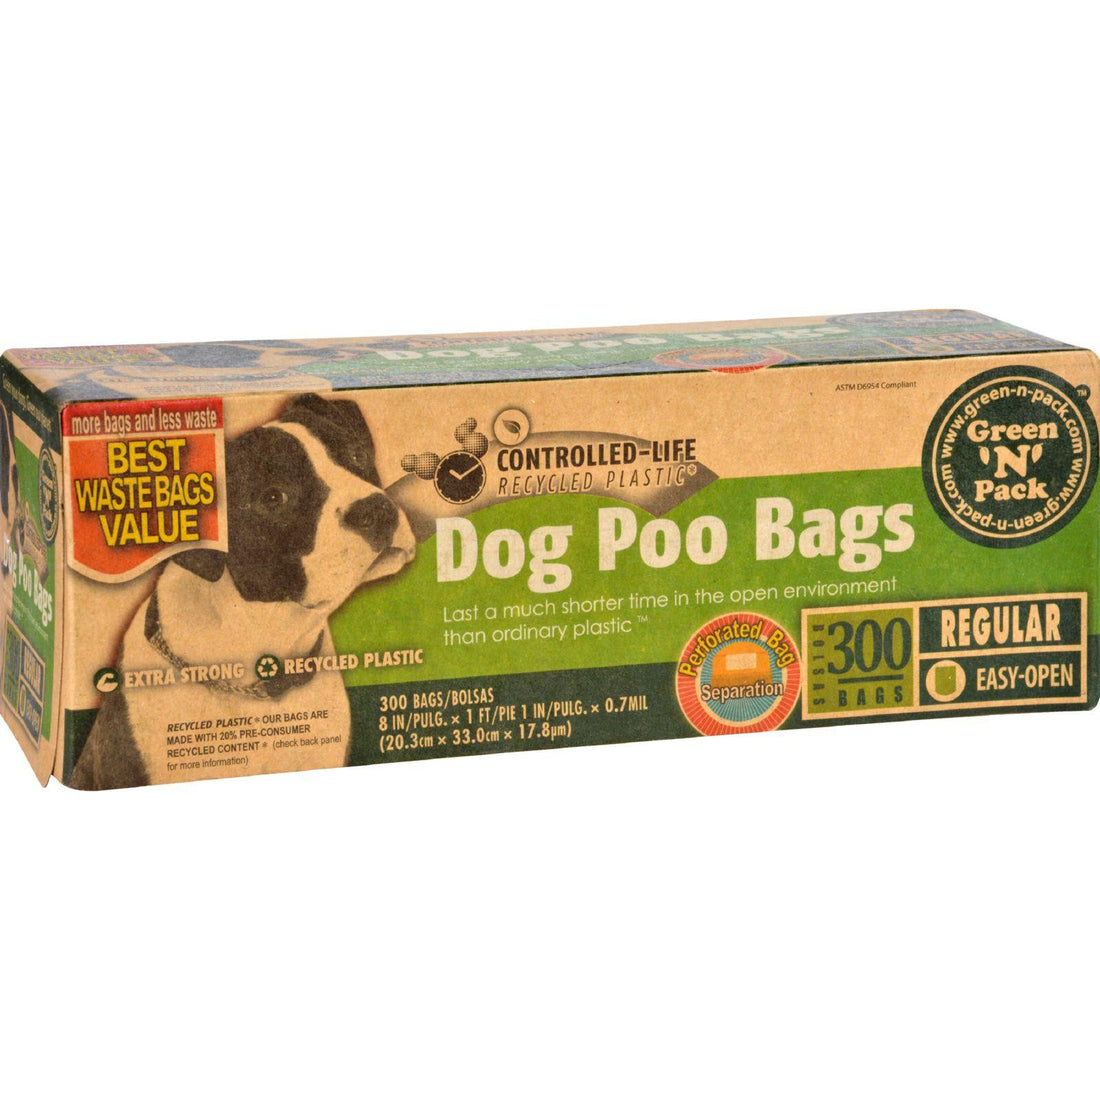 Mother Mantis: Eco-friendly Bags Green N Pack Dog Poo Bags - Litter Pick Up - 300 Bags - 1 Count Eco-friendly Bags